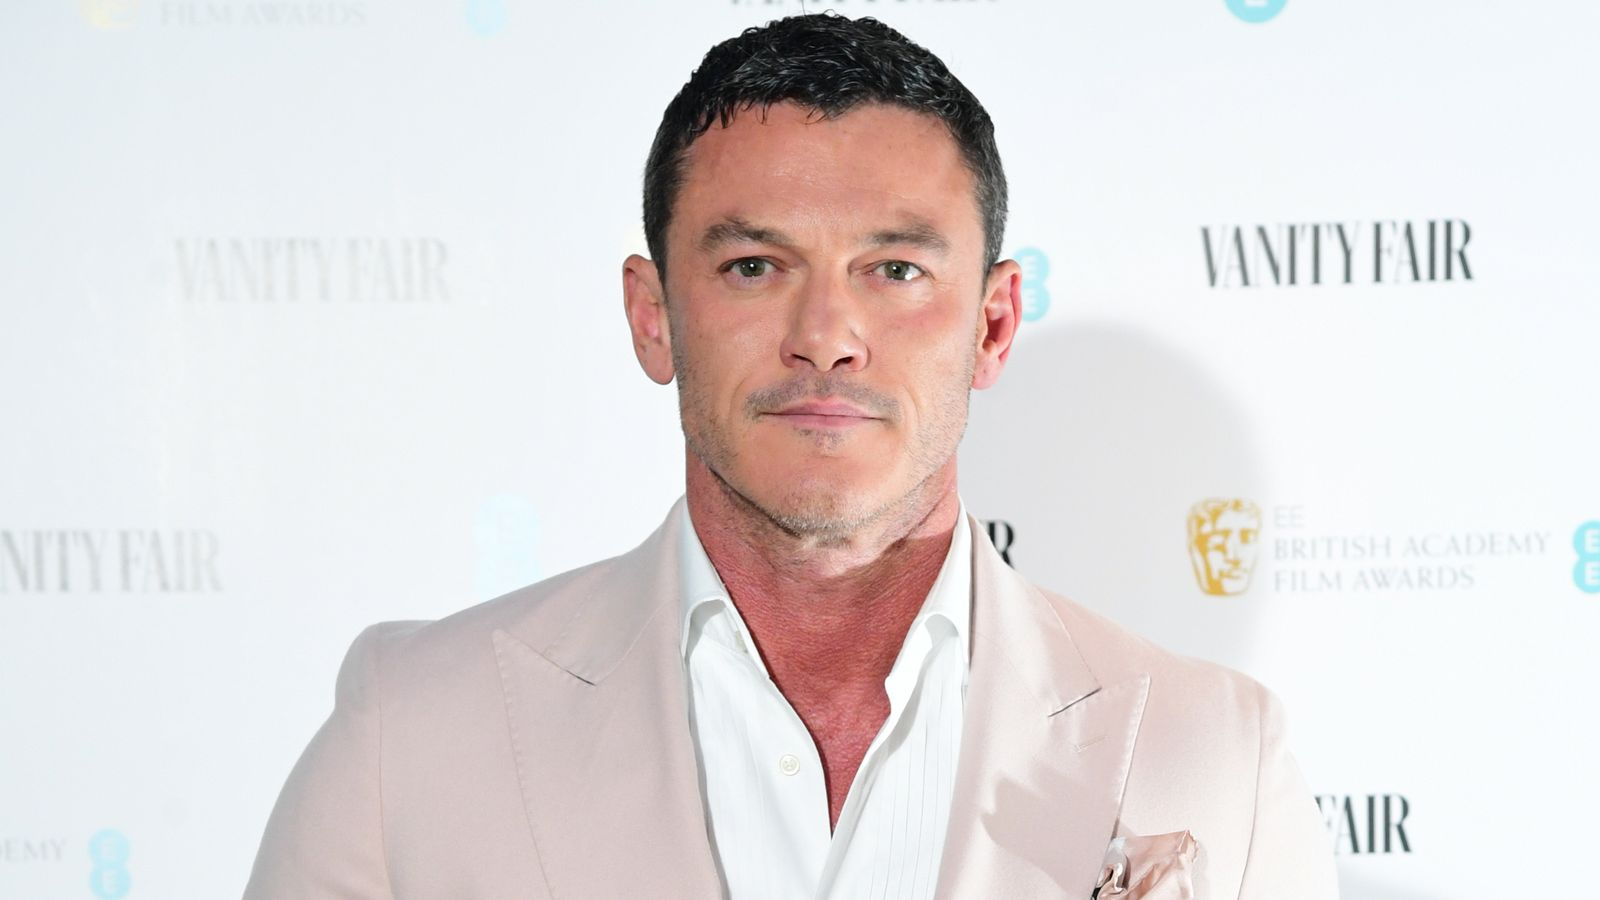 Luke Evans says he 'would jump at the chance' to play the next James Bond